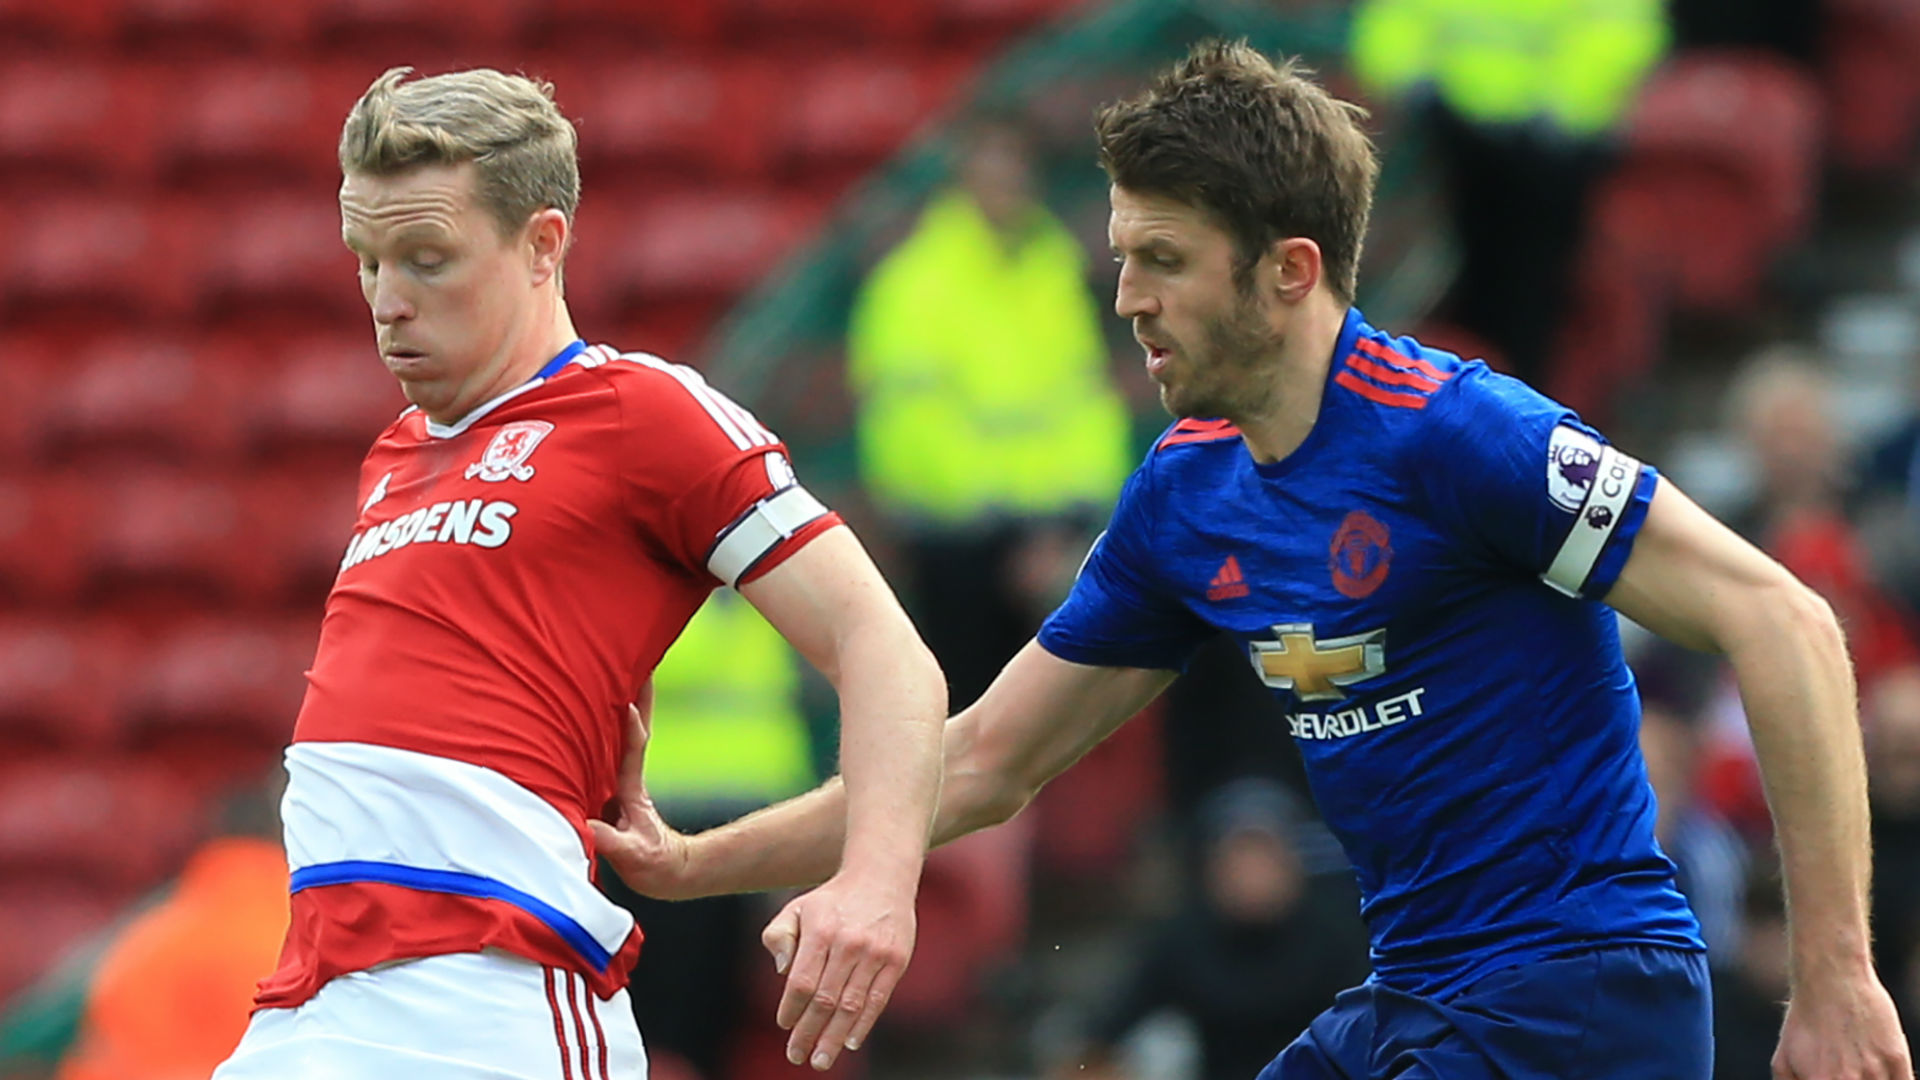 images.performgroup.com/di/library/GOAL/c3/c0/grant-leadbitter-middlesbrough-michael-carrick-manchester-united_111xhn95entw21nu8pf7ekhc5e